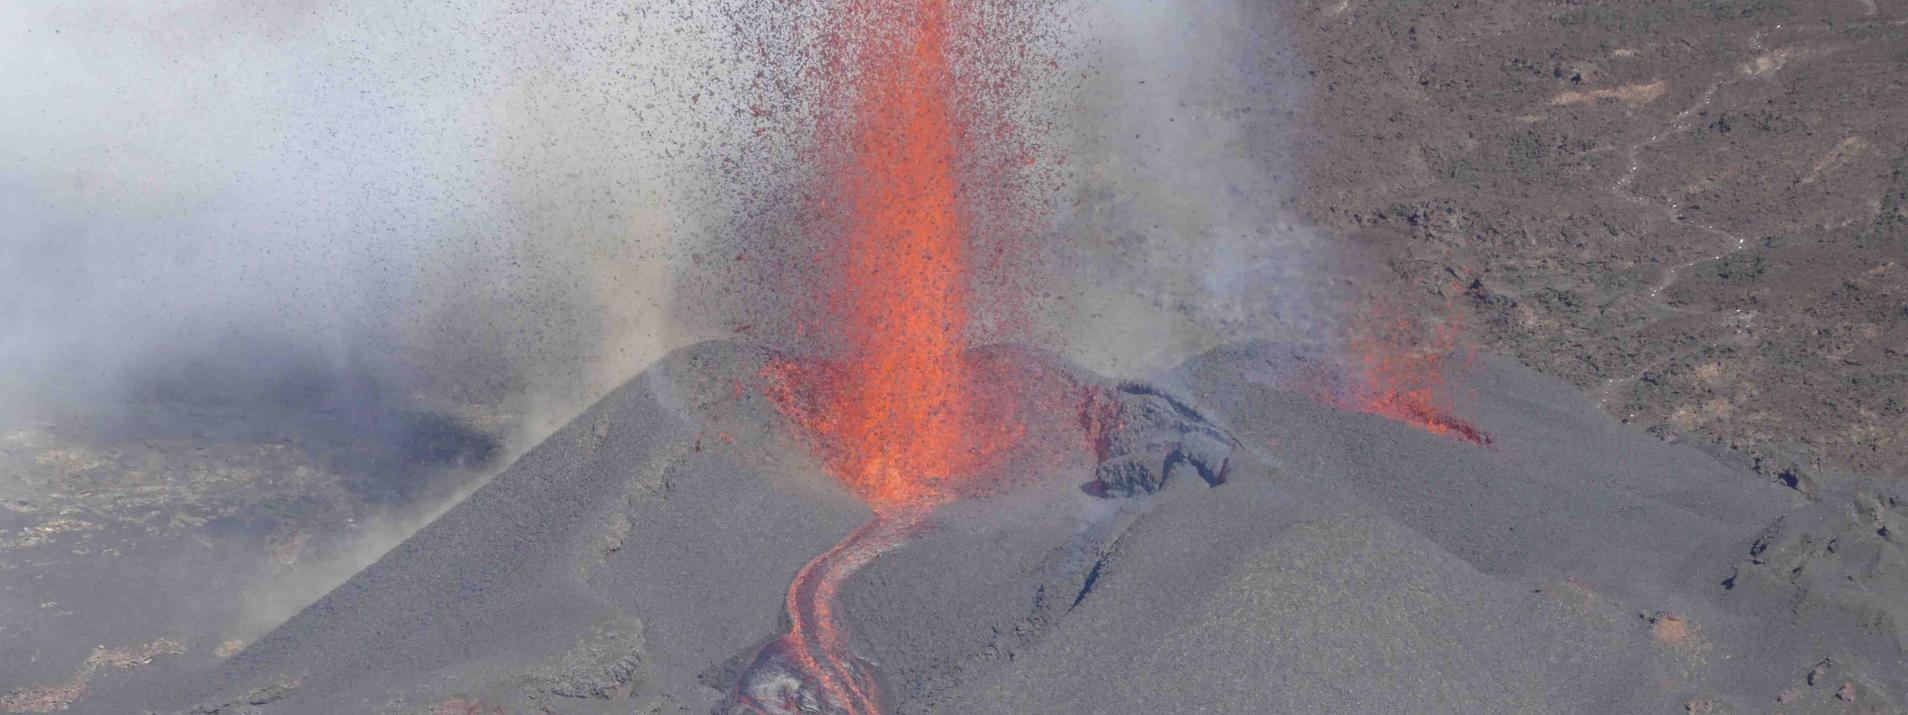 Volcanic eruption in Reunion.